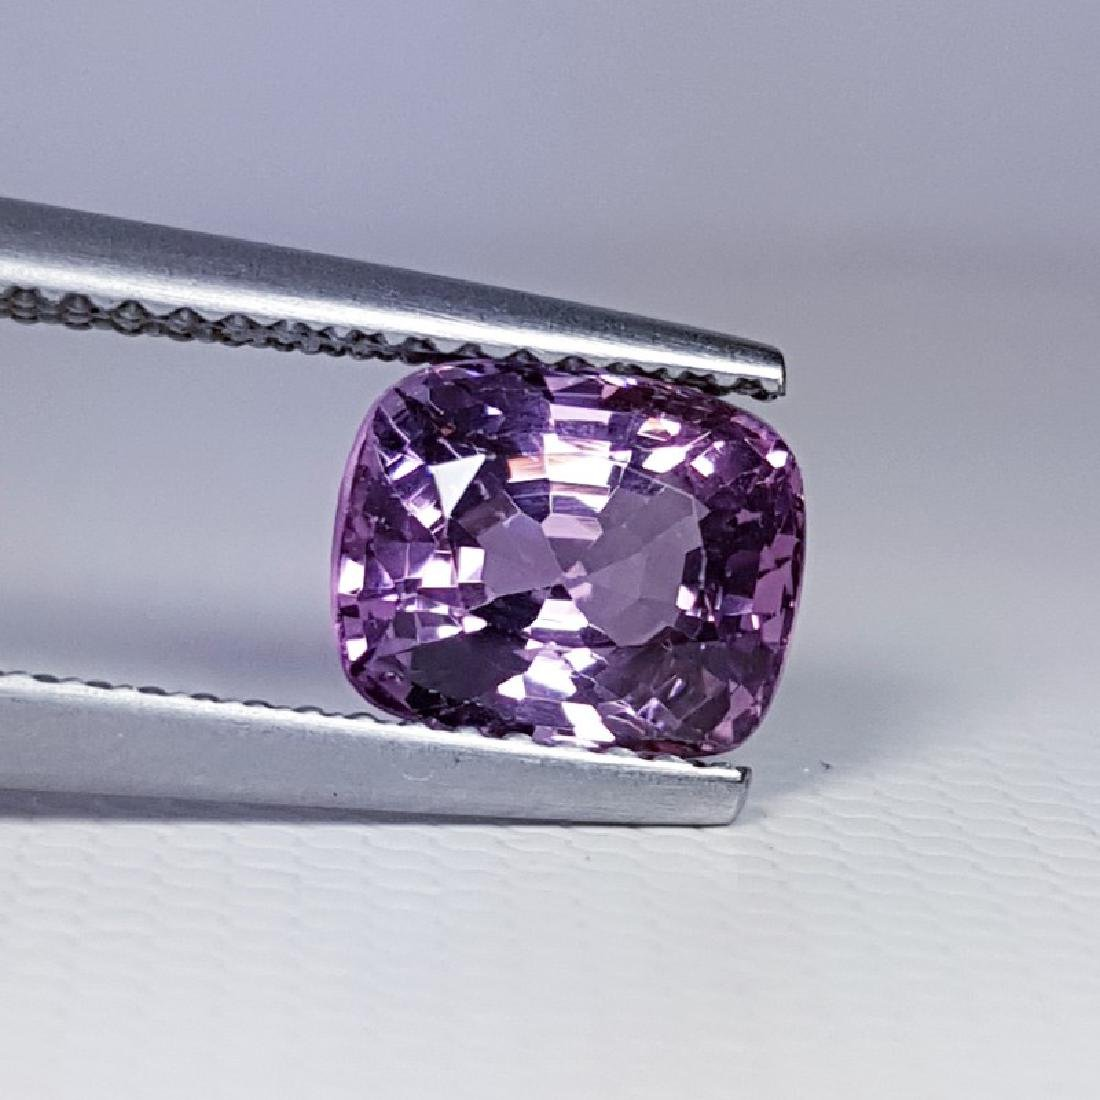 2.10 ct Collective Gem Cushion Cut Natural Spinel - 2